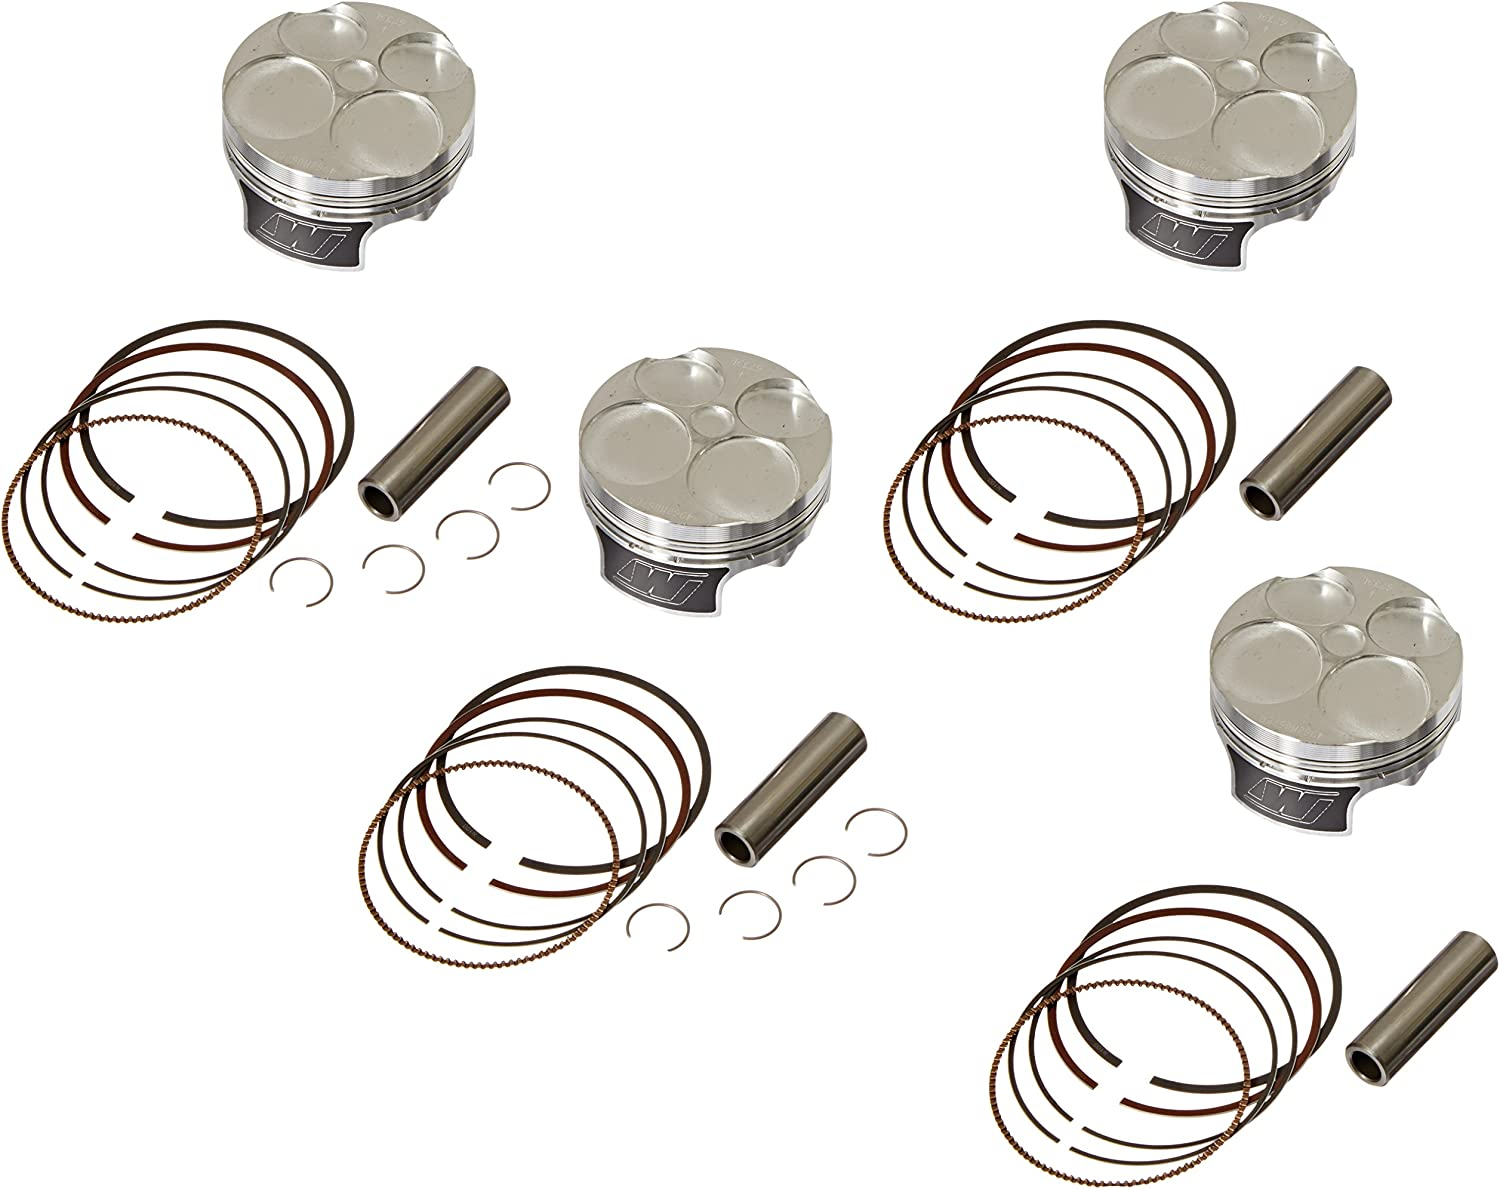 CK198 67.0mm 13:1 Compression Ratio 4-Stroke Motorcycle Top End Piston Kit Wiseco